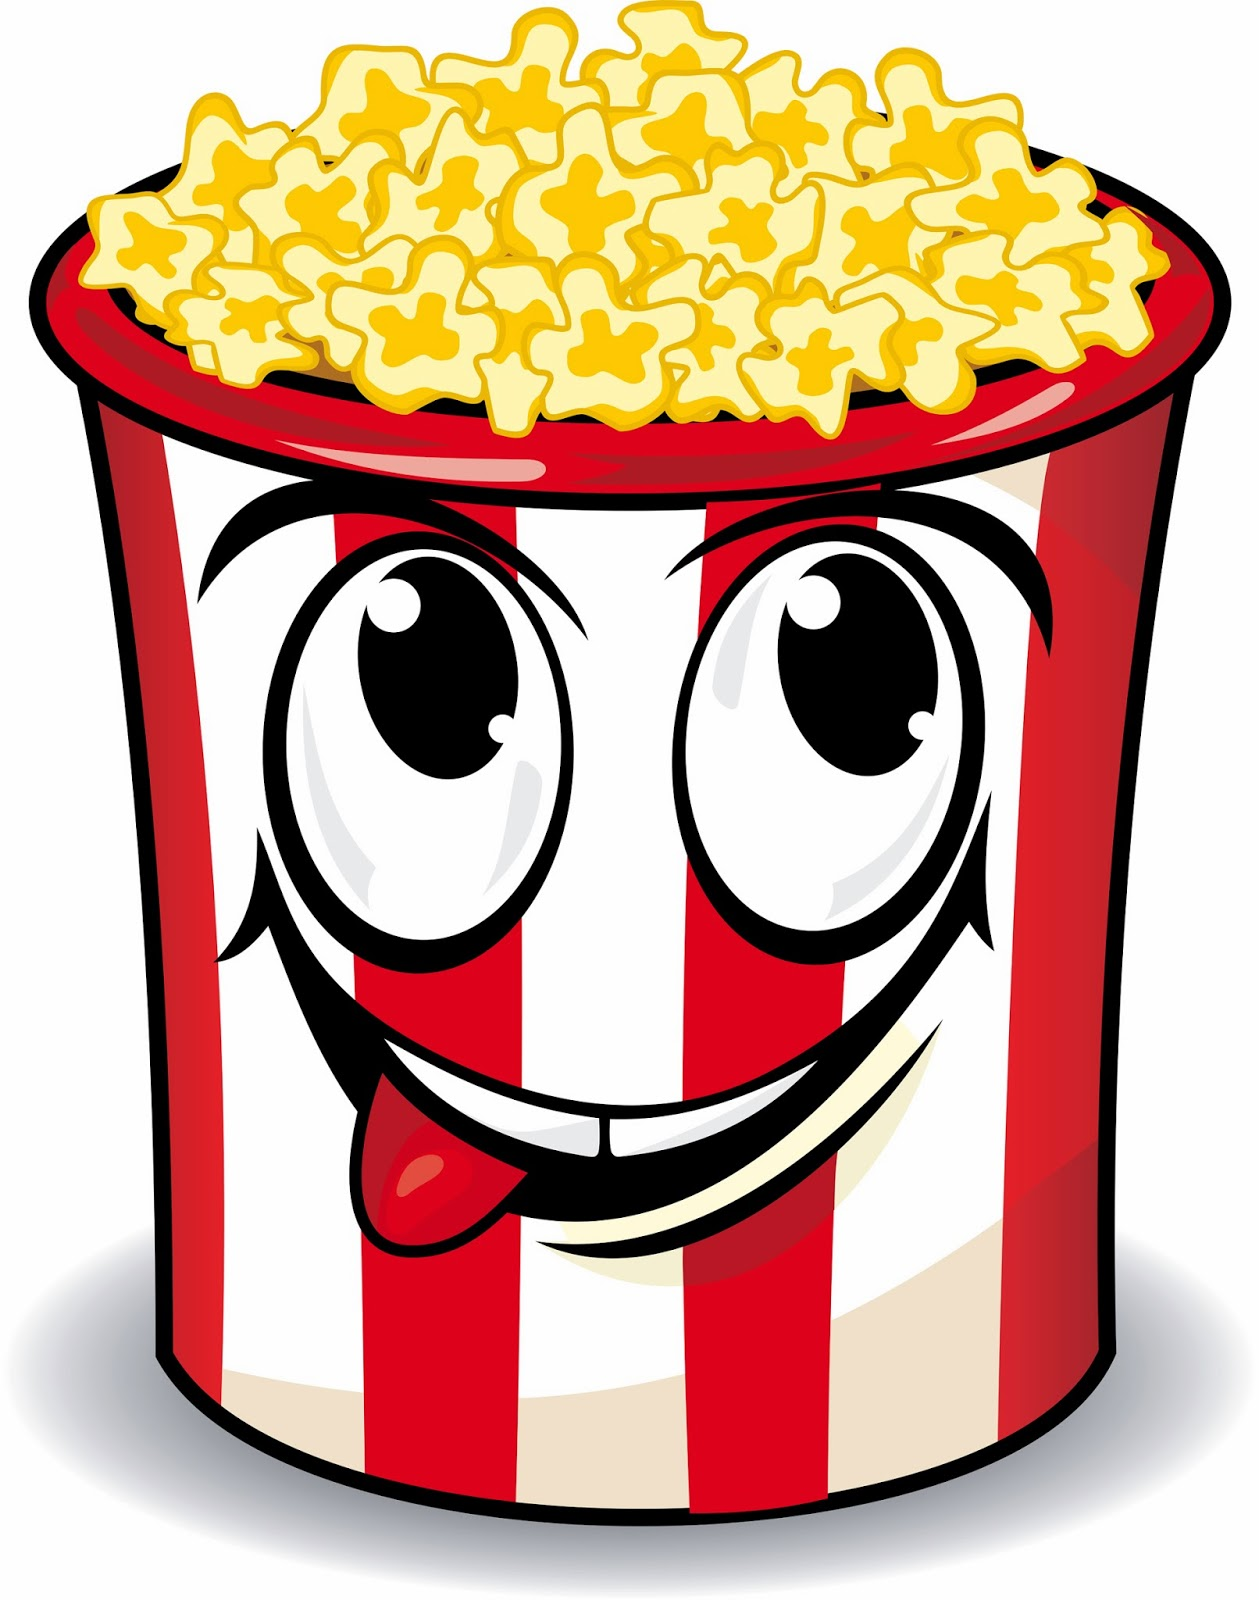 1259x1600 Popcorn Clipart Free Clip Art Images Image 2